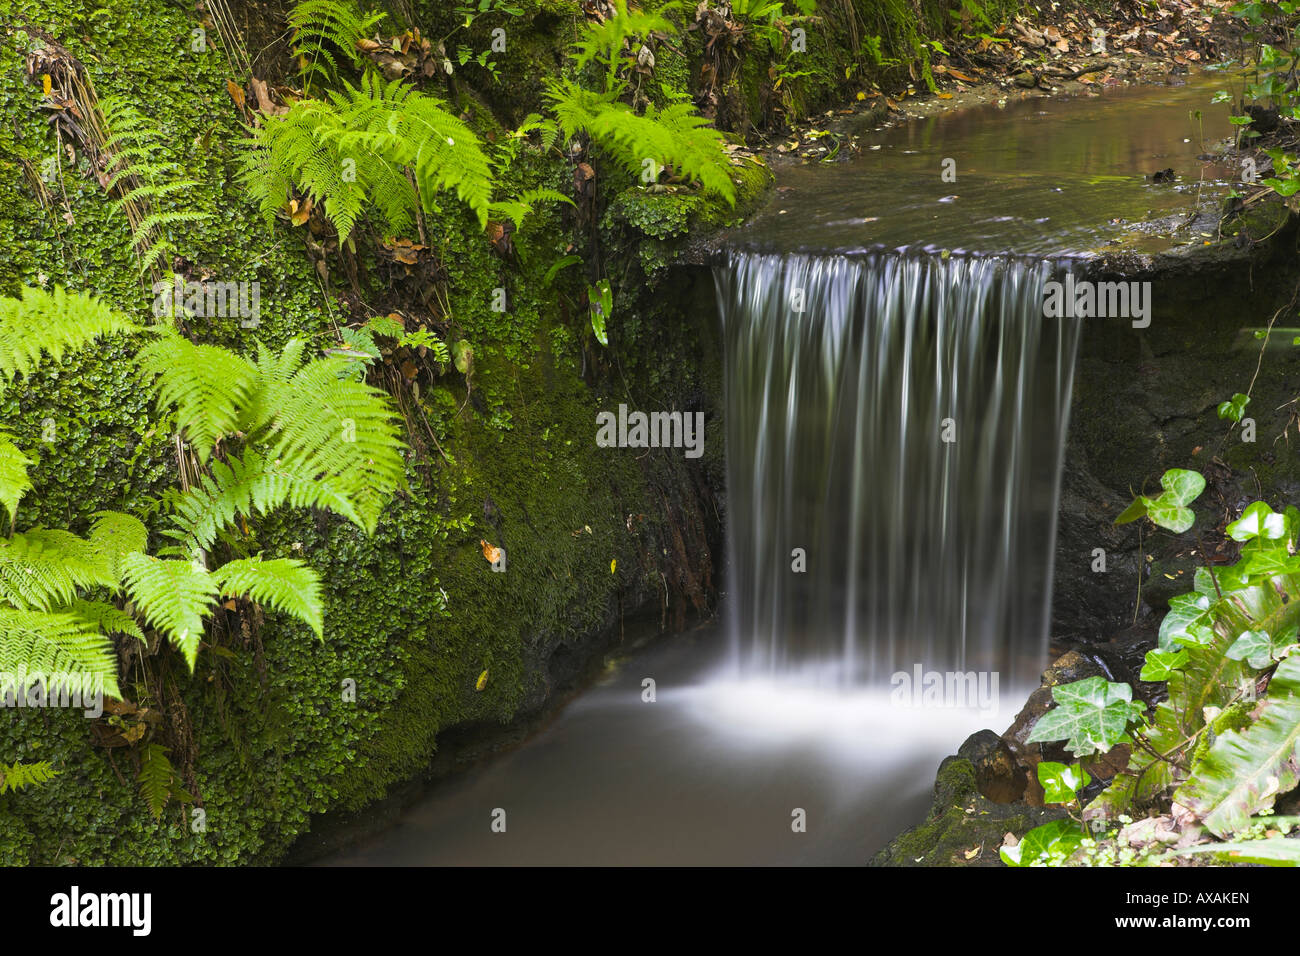 Waterfall at Shanklin Chine on the Isle of Wight - Stock Image